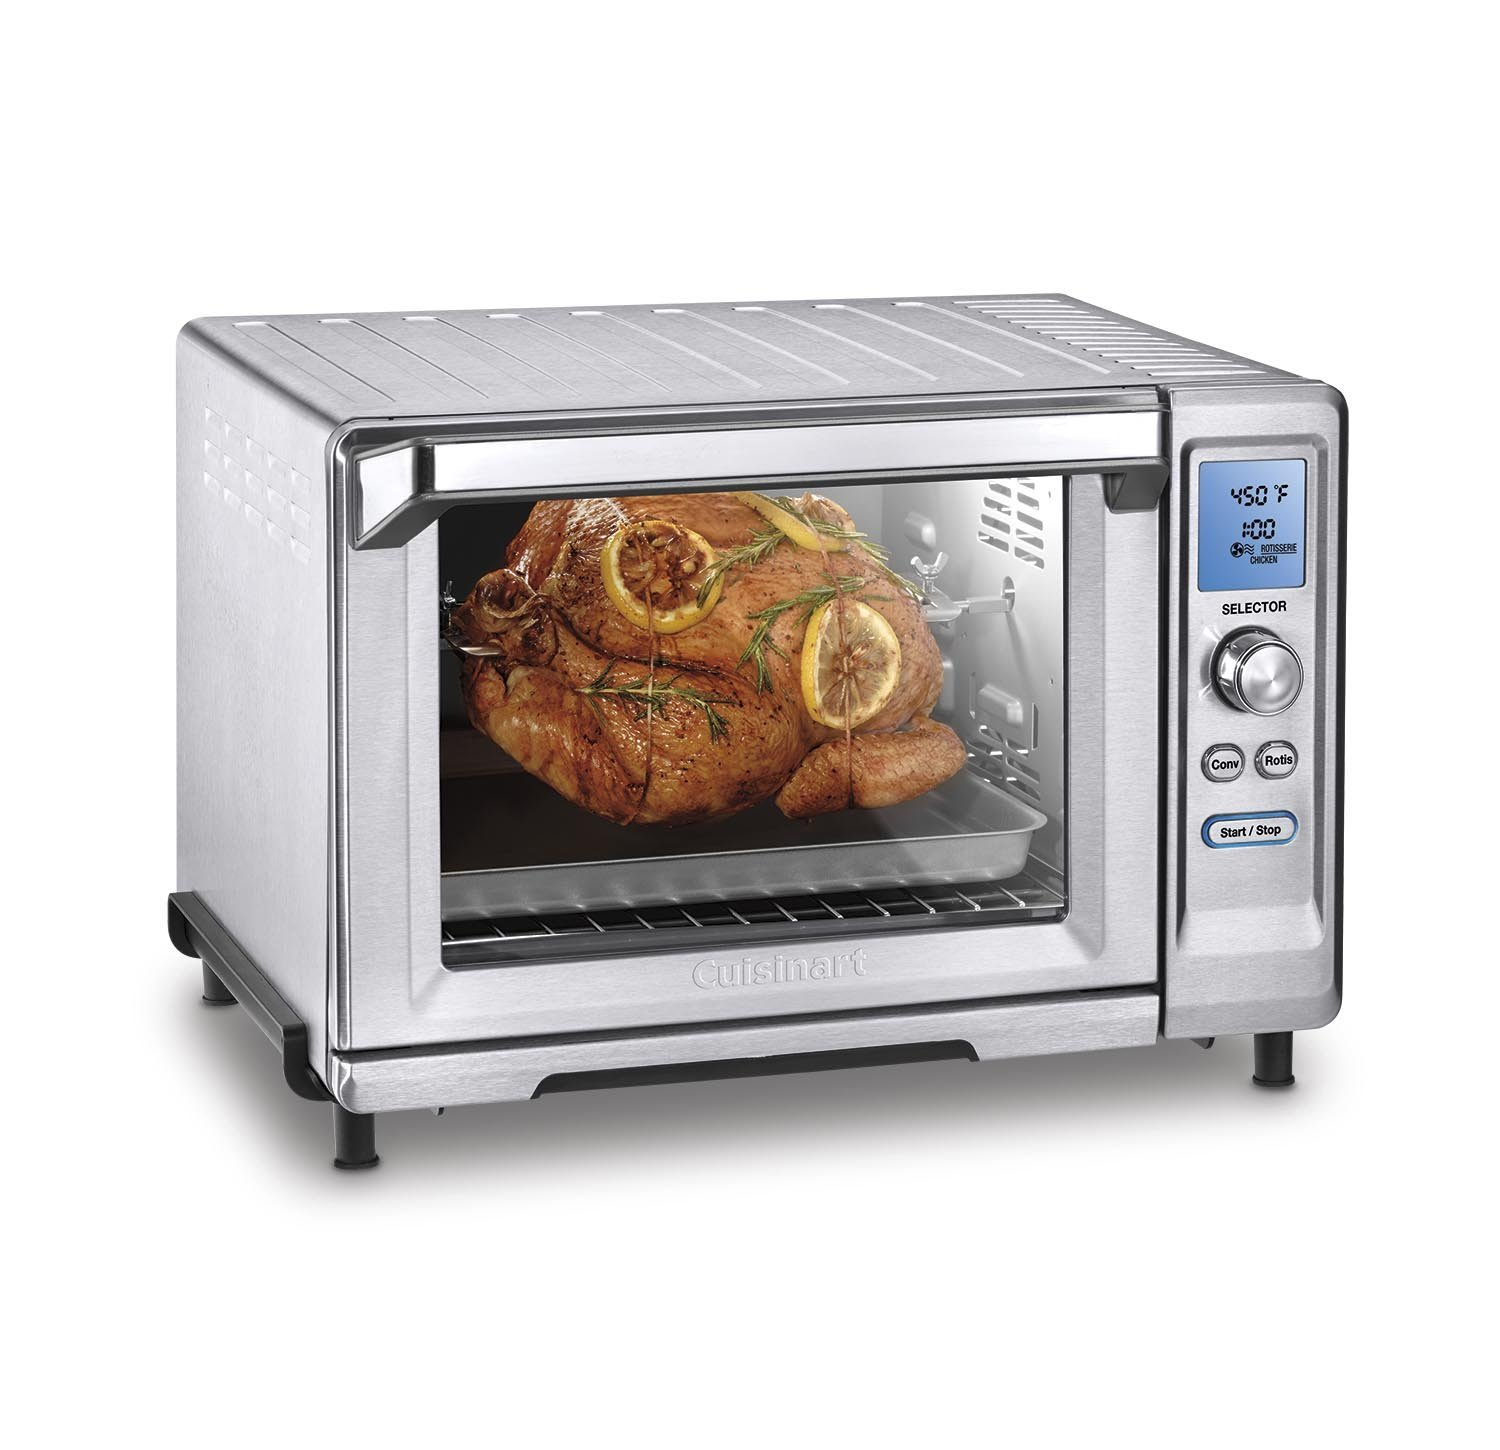 countertop ovens com convection toaster rotisserie hamiltonbeach and reviews oven with revolving